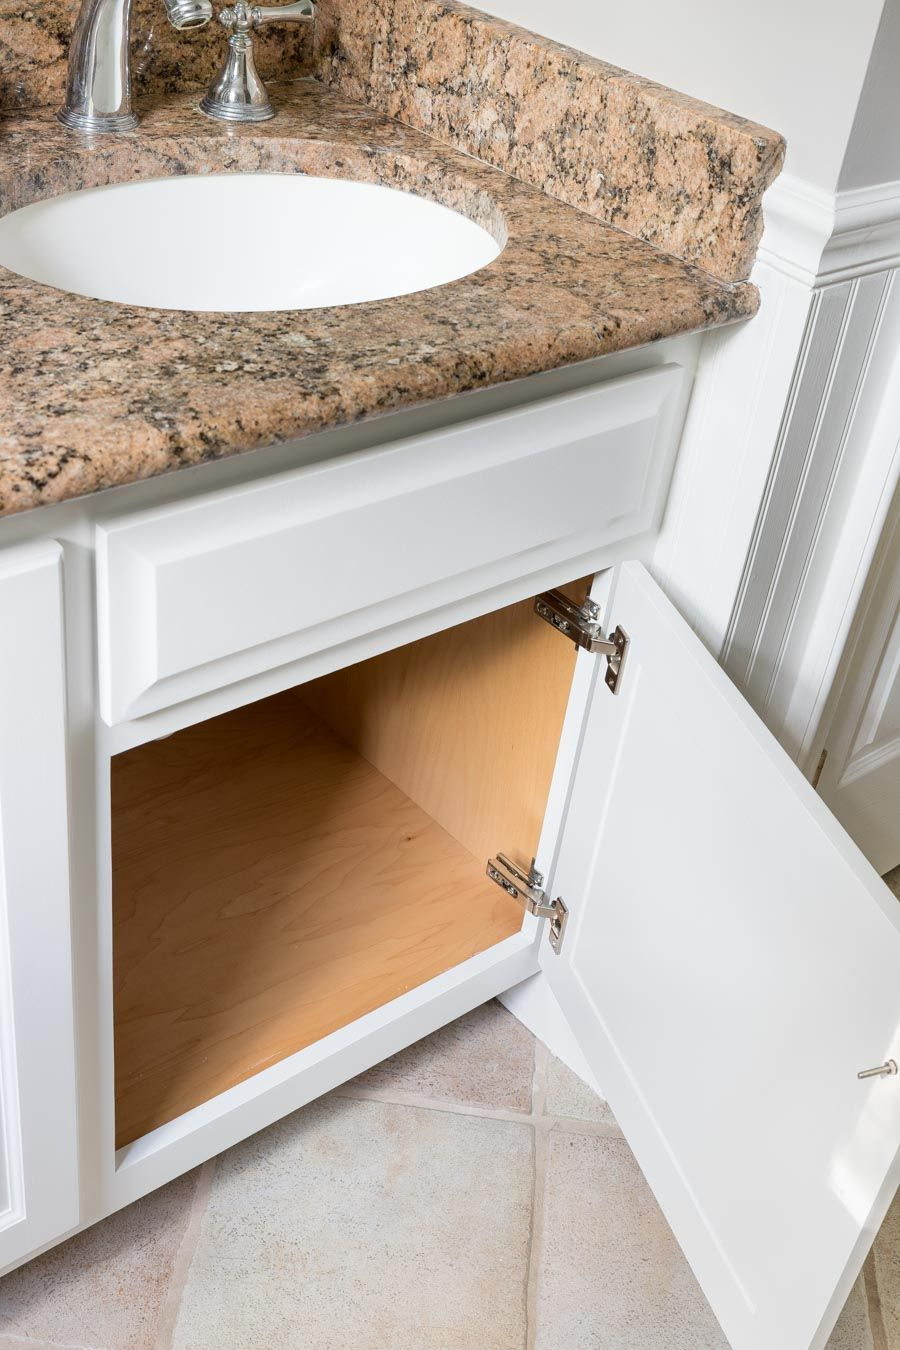 Pin On Painting Cabinets